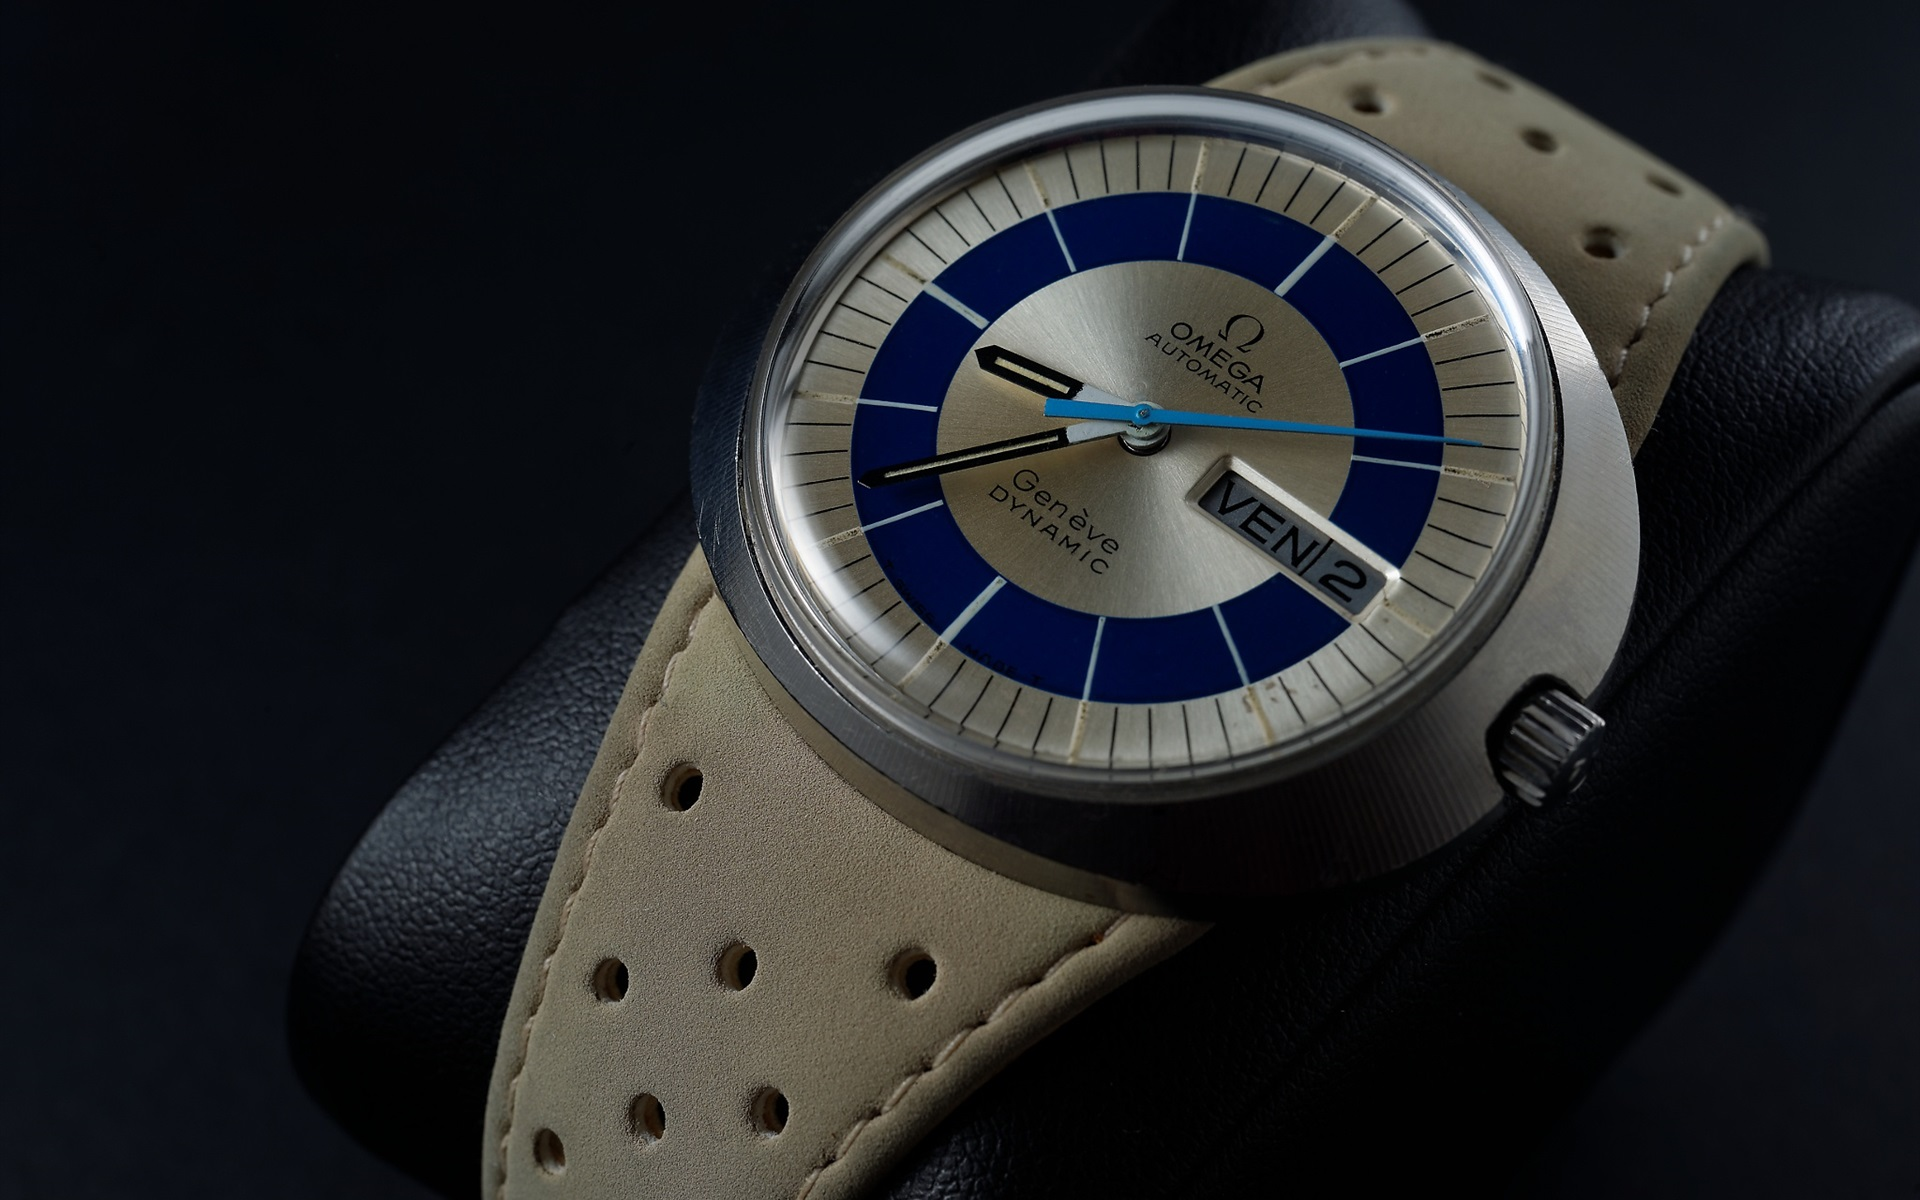 Wallpaper Omega Watch Simple Style 1920x1200 Hd Picture Image